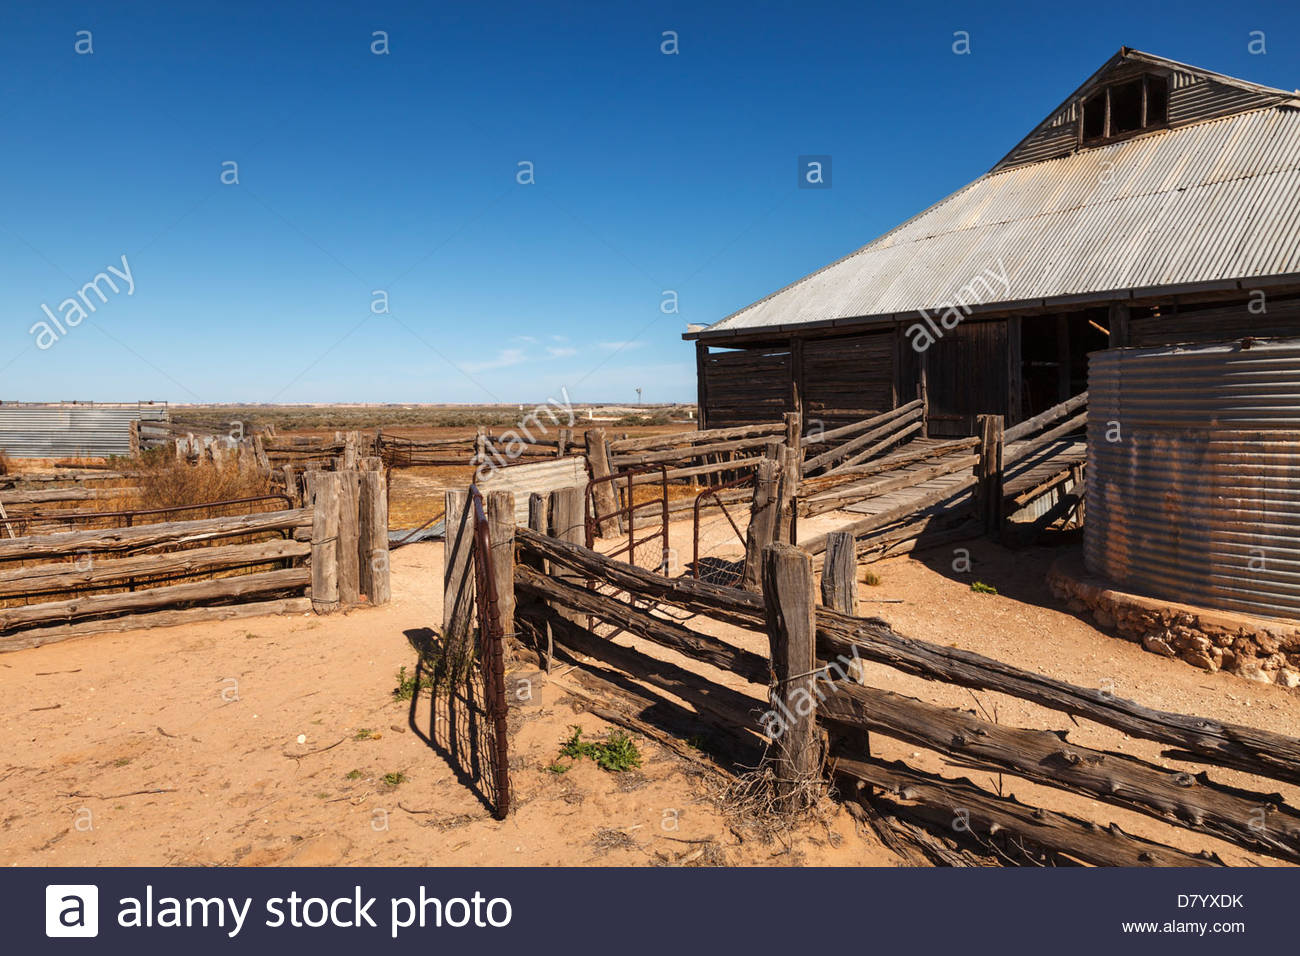 Mungo Woolshed, Mungo National Park, Outback New South Wales, Australia - Stock Image